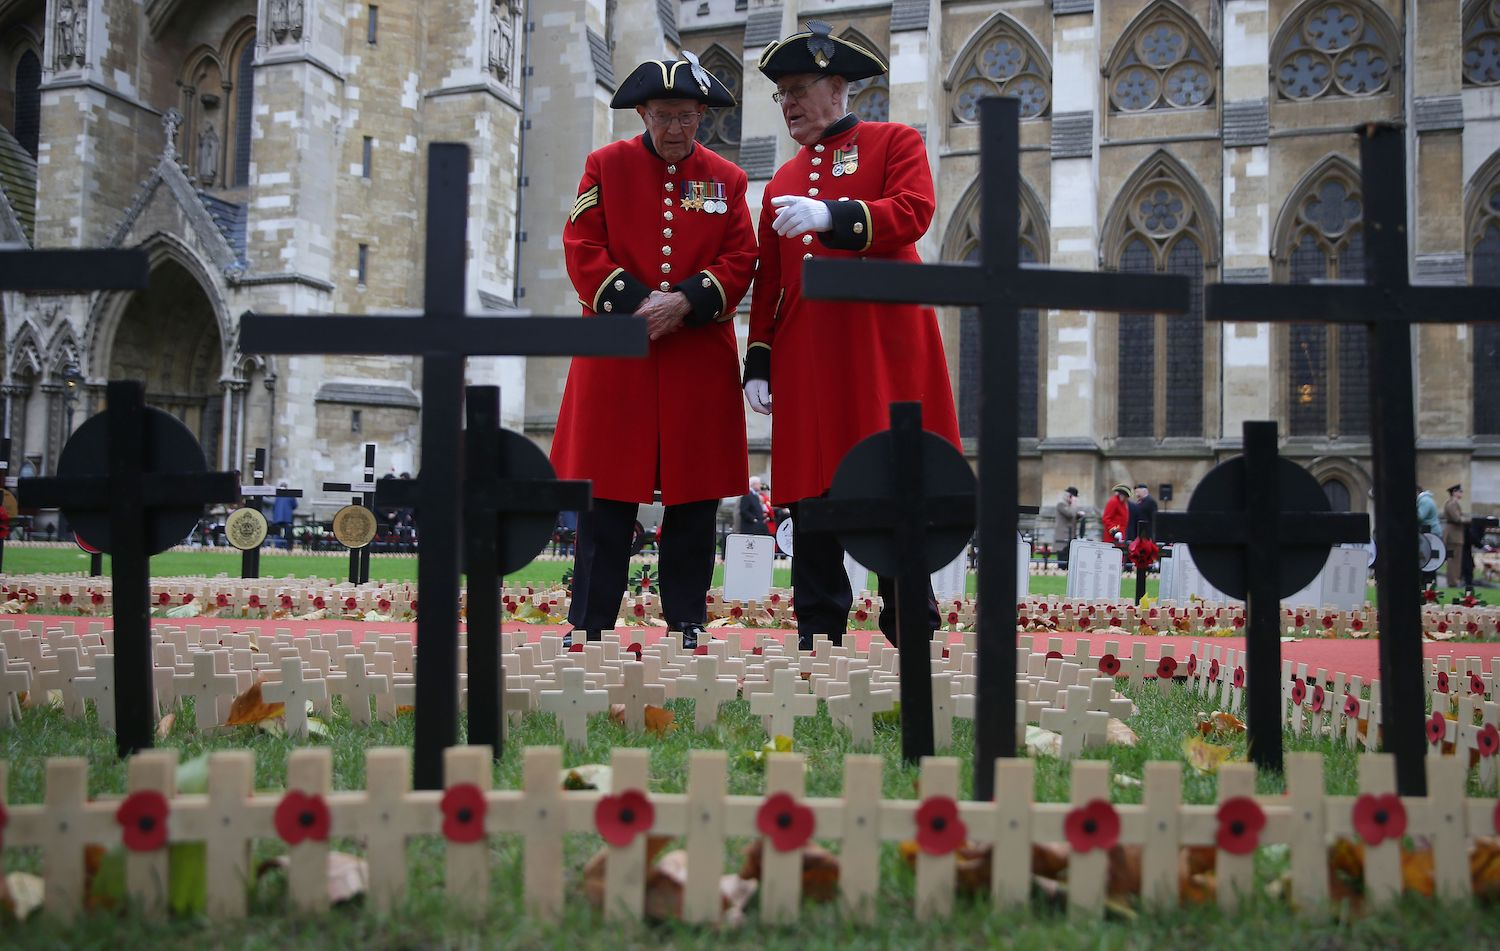 Chelsea pensioners look at Crosses of Remembrance, as they pay their respects at Field of Remembrance at Westminster Abbey in central London on Nov. 9. (Daniel Leal-Olivas/AFP/Getty Images)